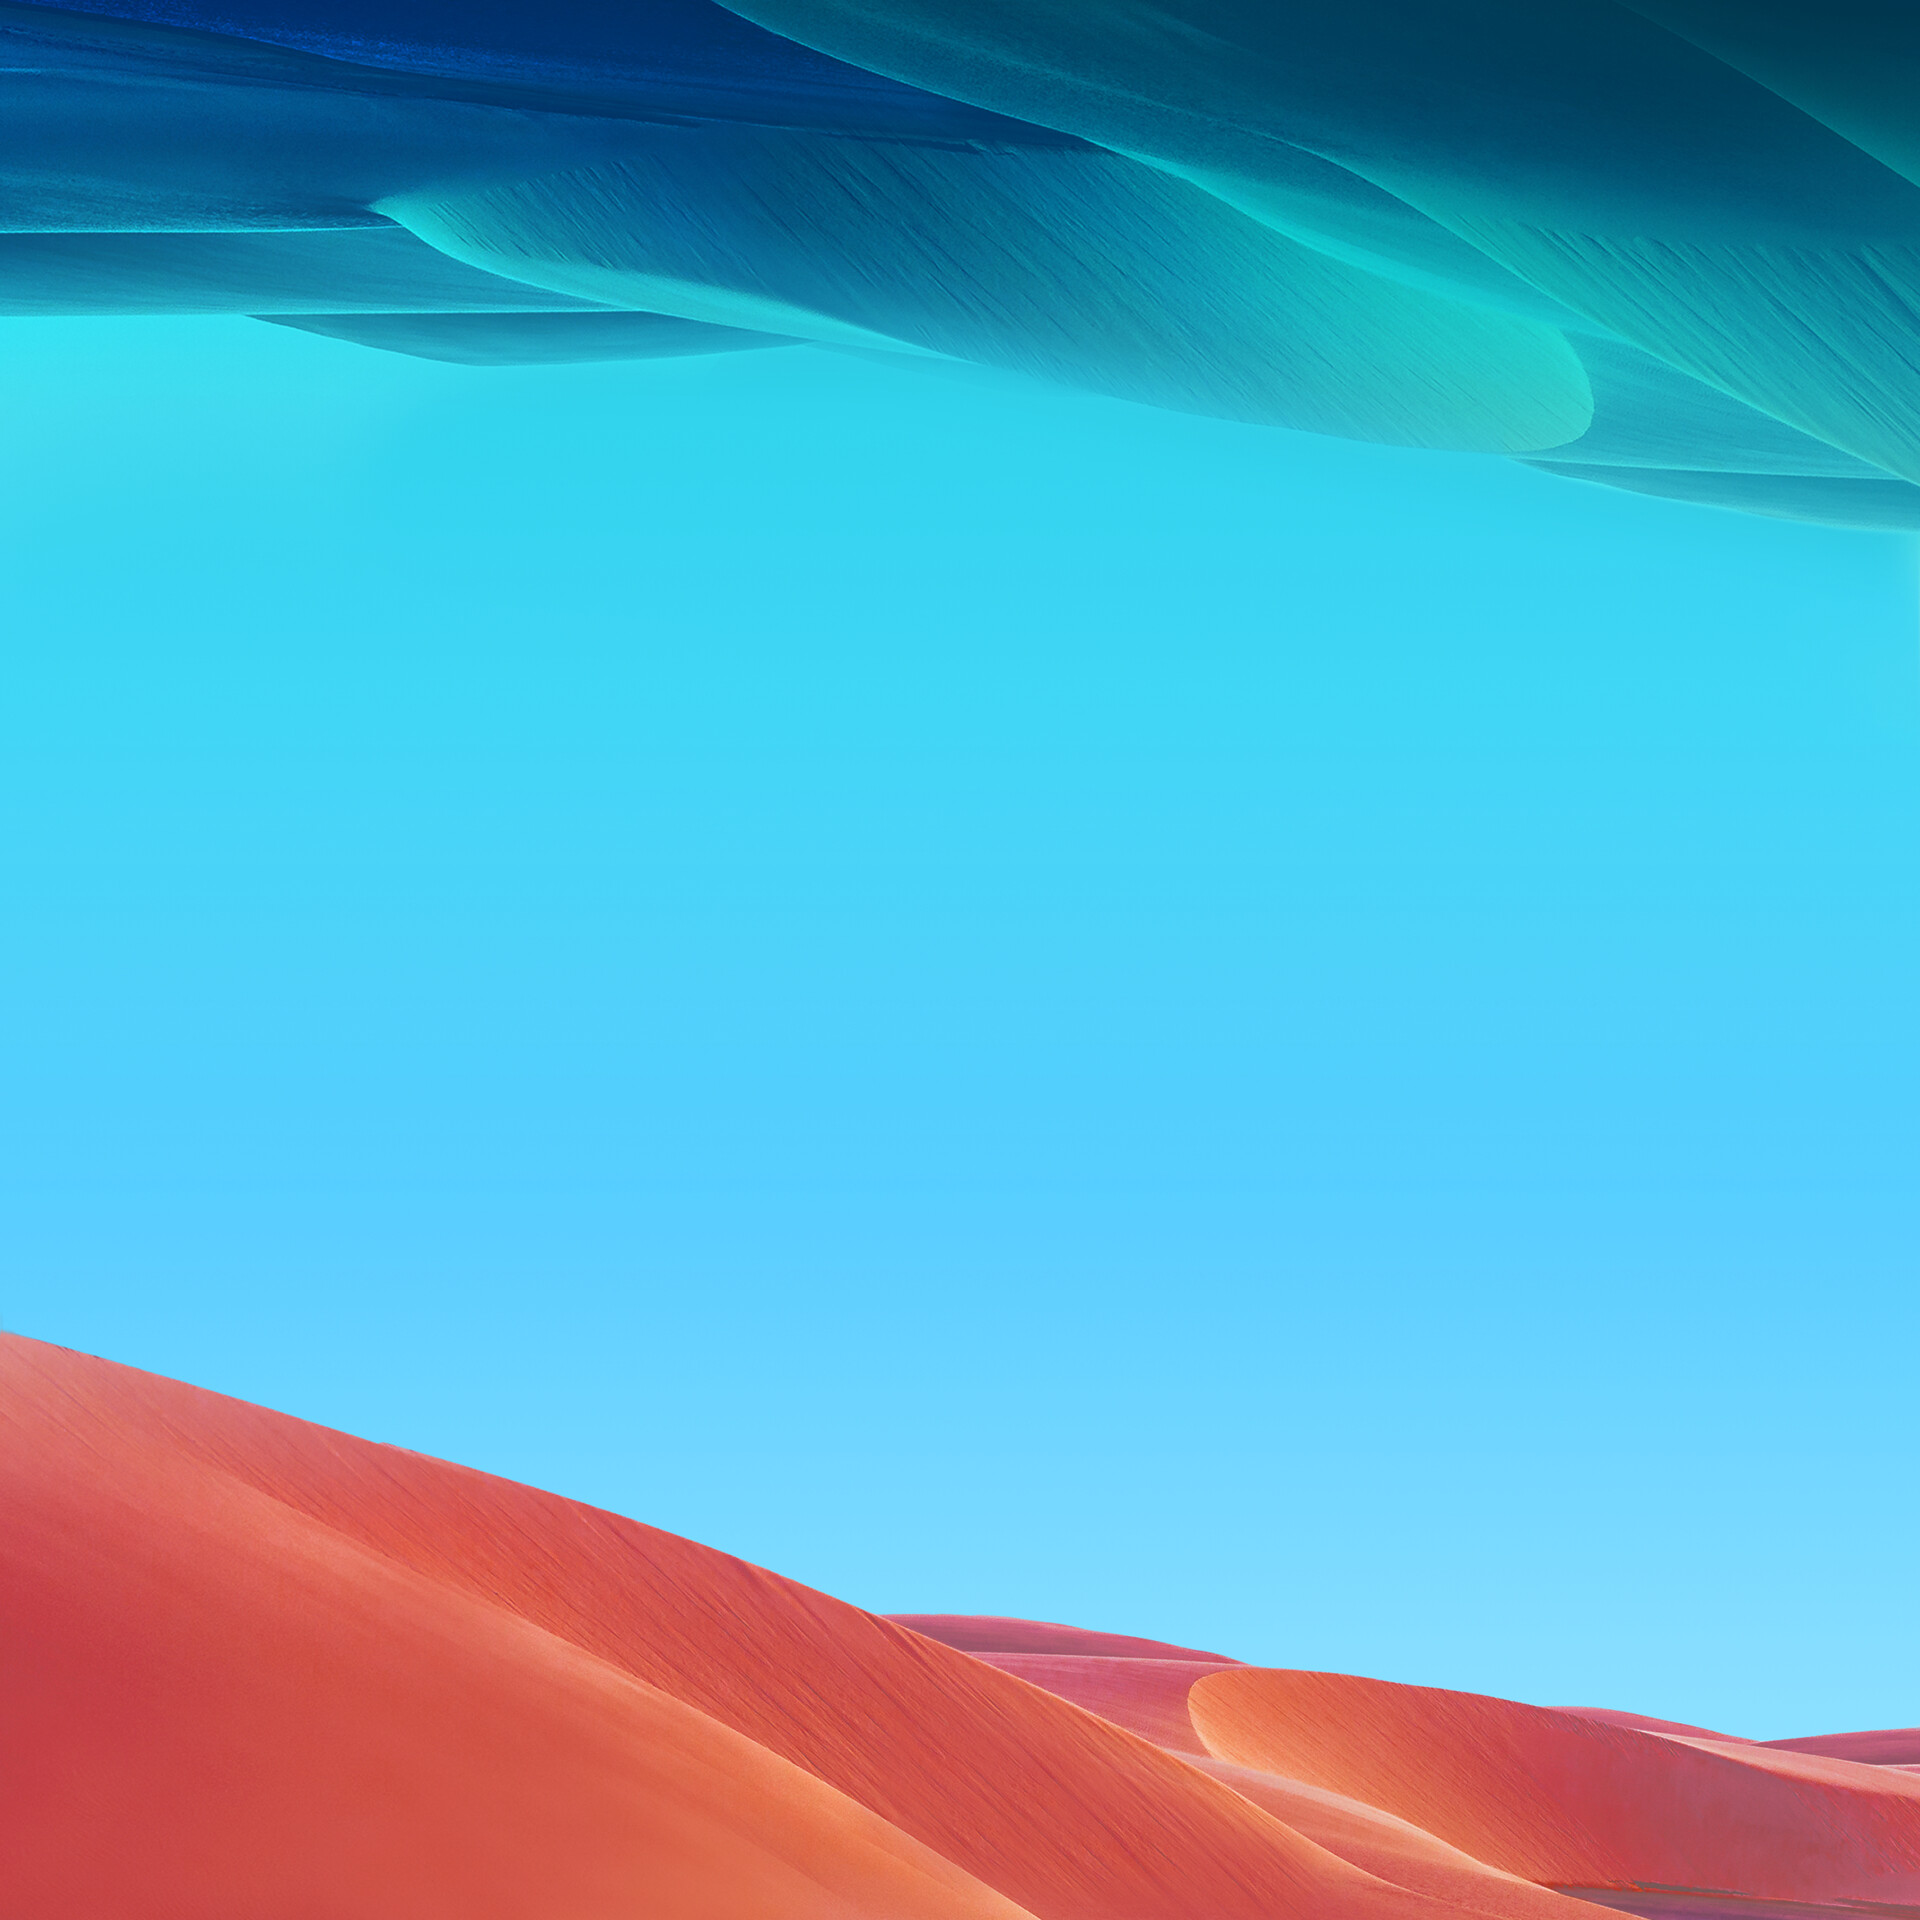 Samsung Galaxy M10 Galaxy M20 wallpapers now available to download 1920x1920